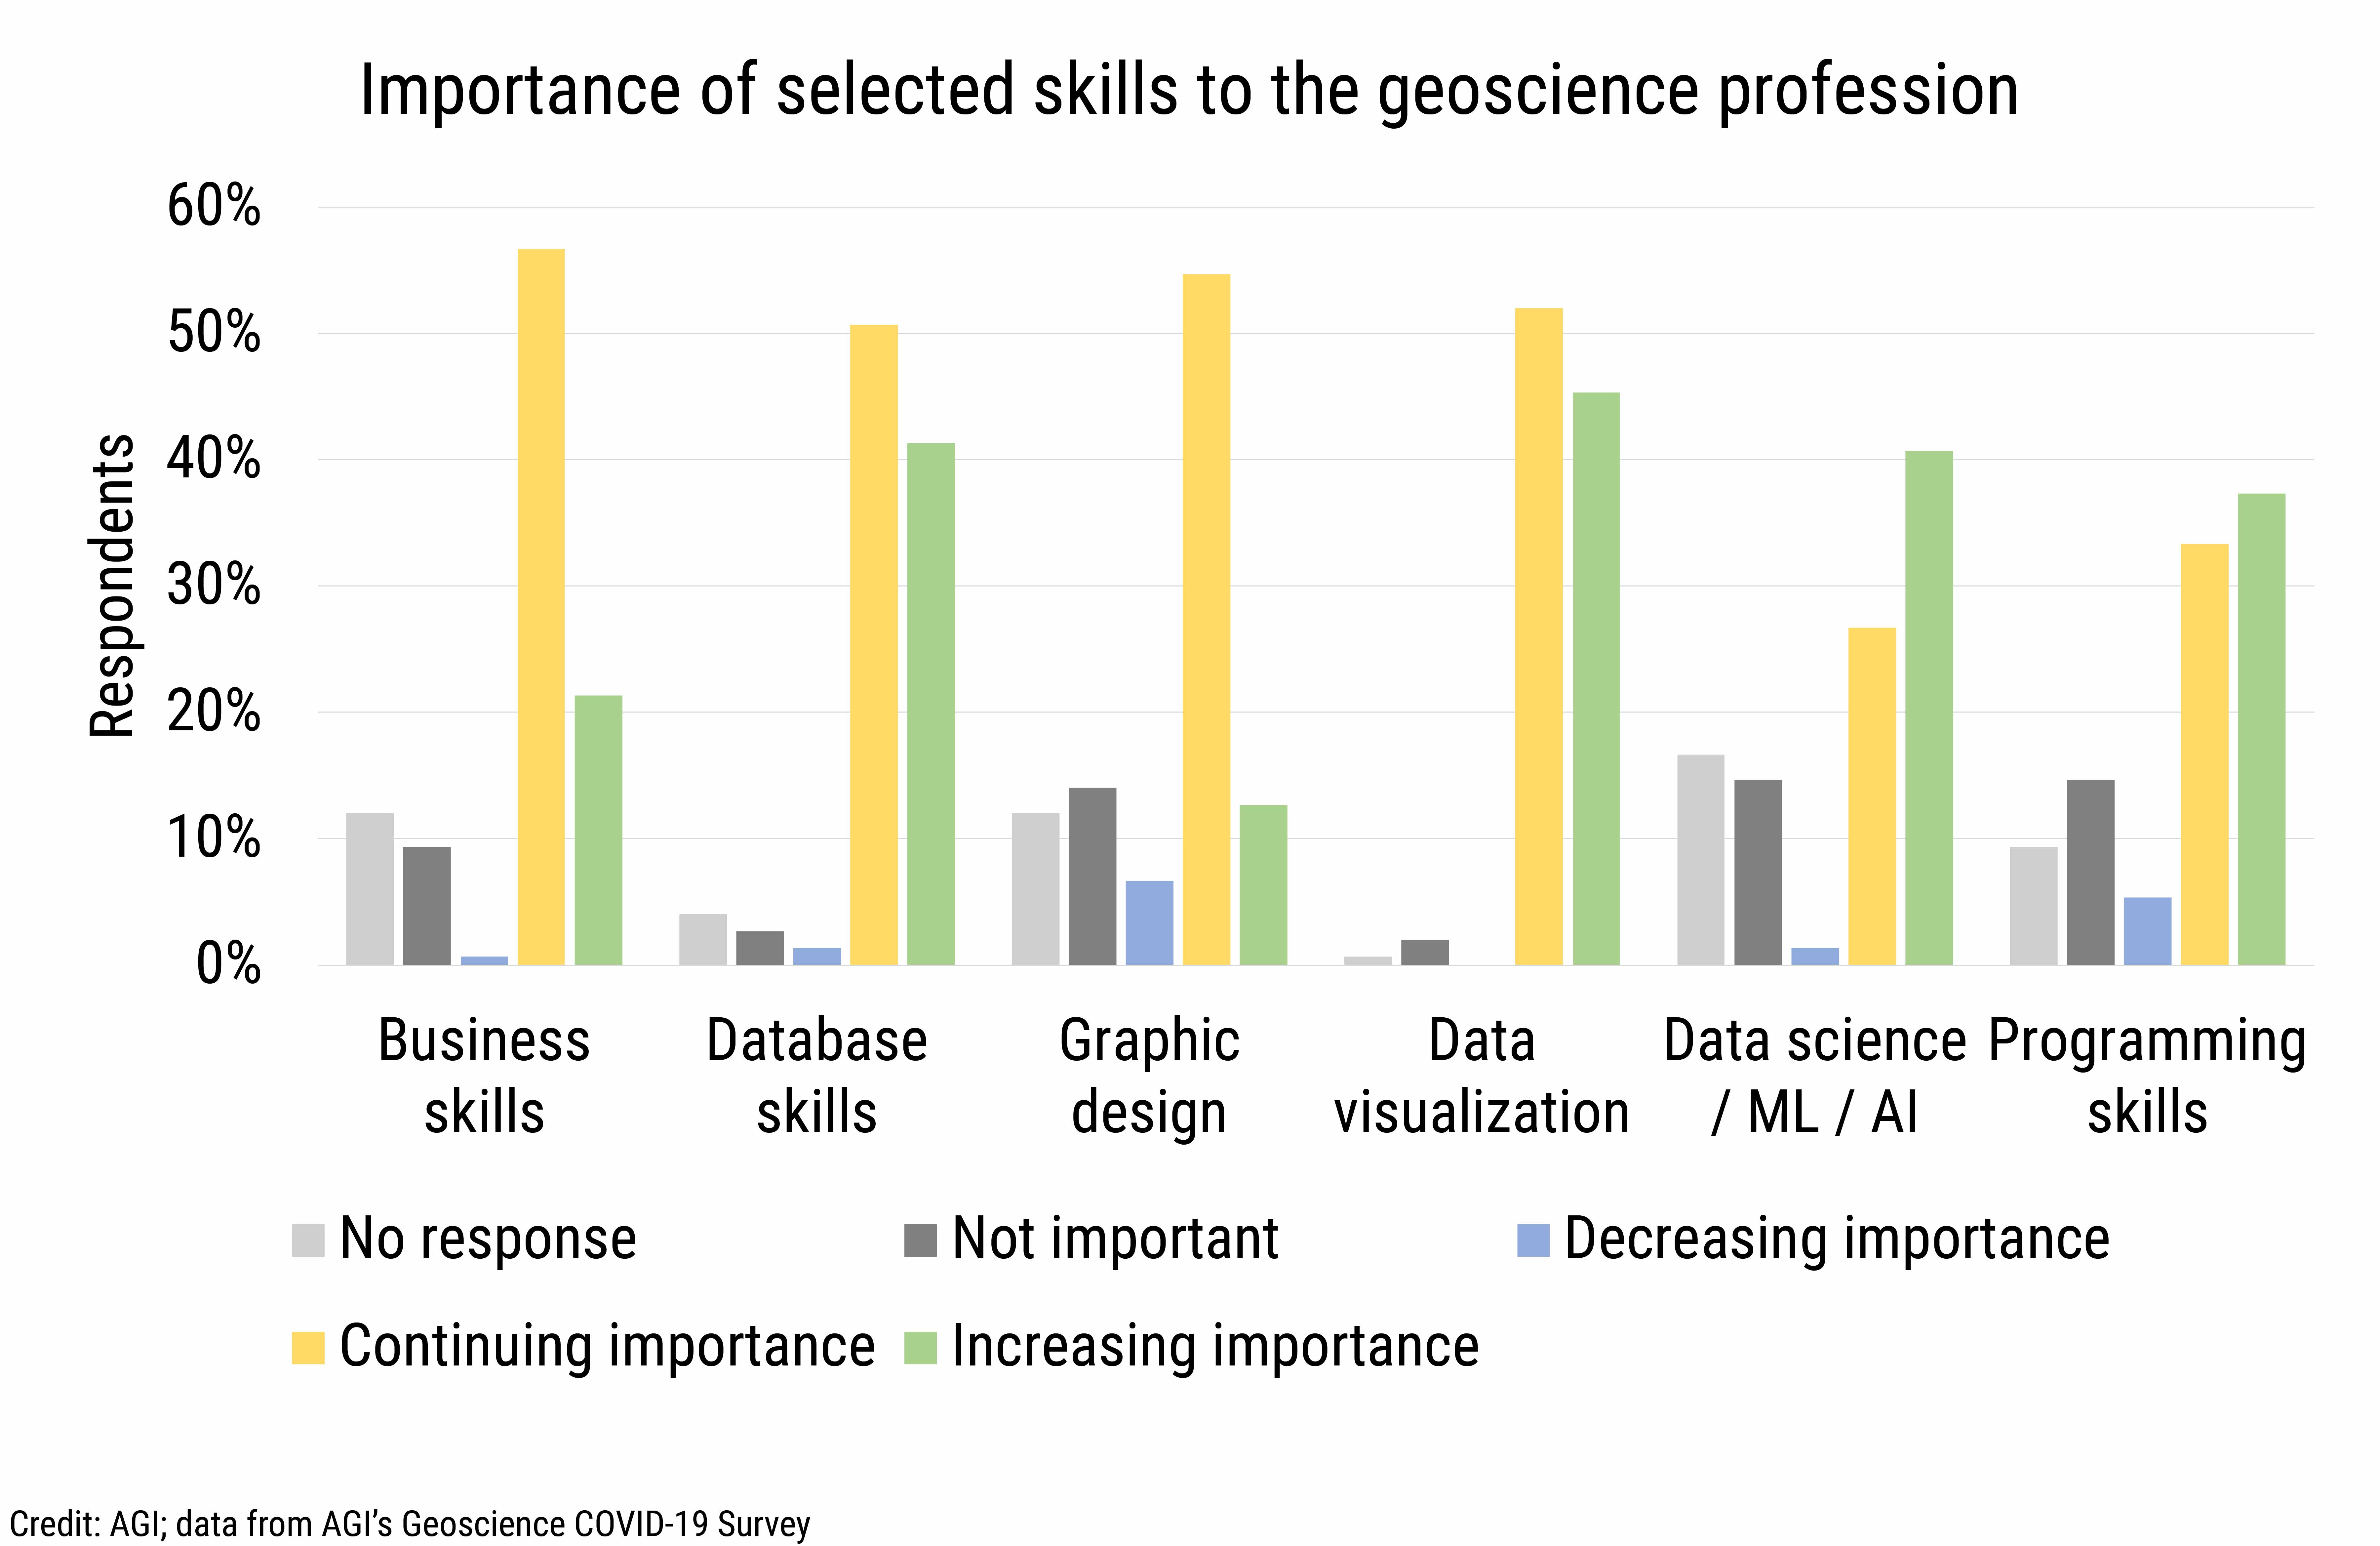 DB_2021-009 chart 02: Importance of selected skills to the geoscience profession (Credit: AGI; data from AGI's Geoscience COVID-19 Survey)